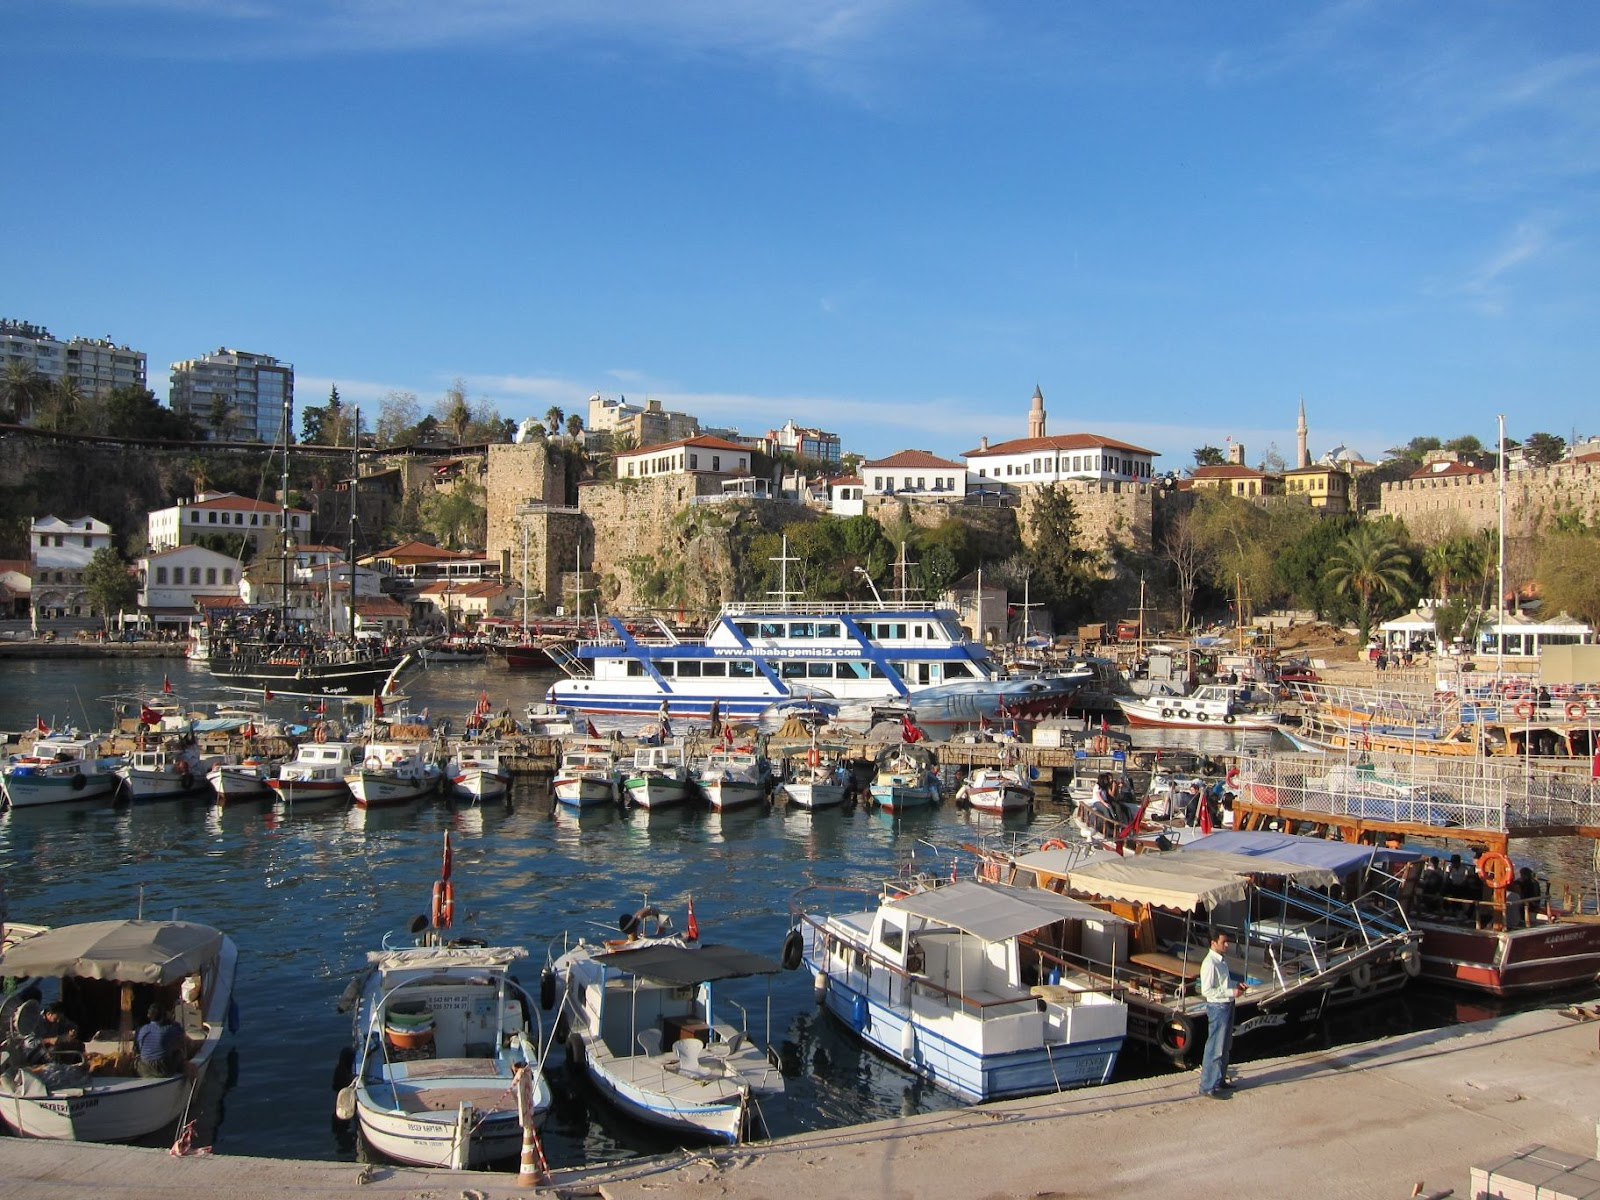 Worldtour 2011 - 2012: 24th-25th March: Travel to Antalya ...